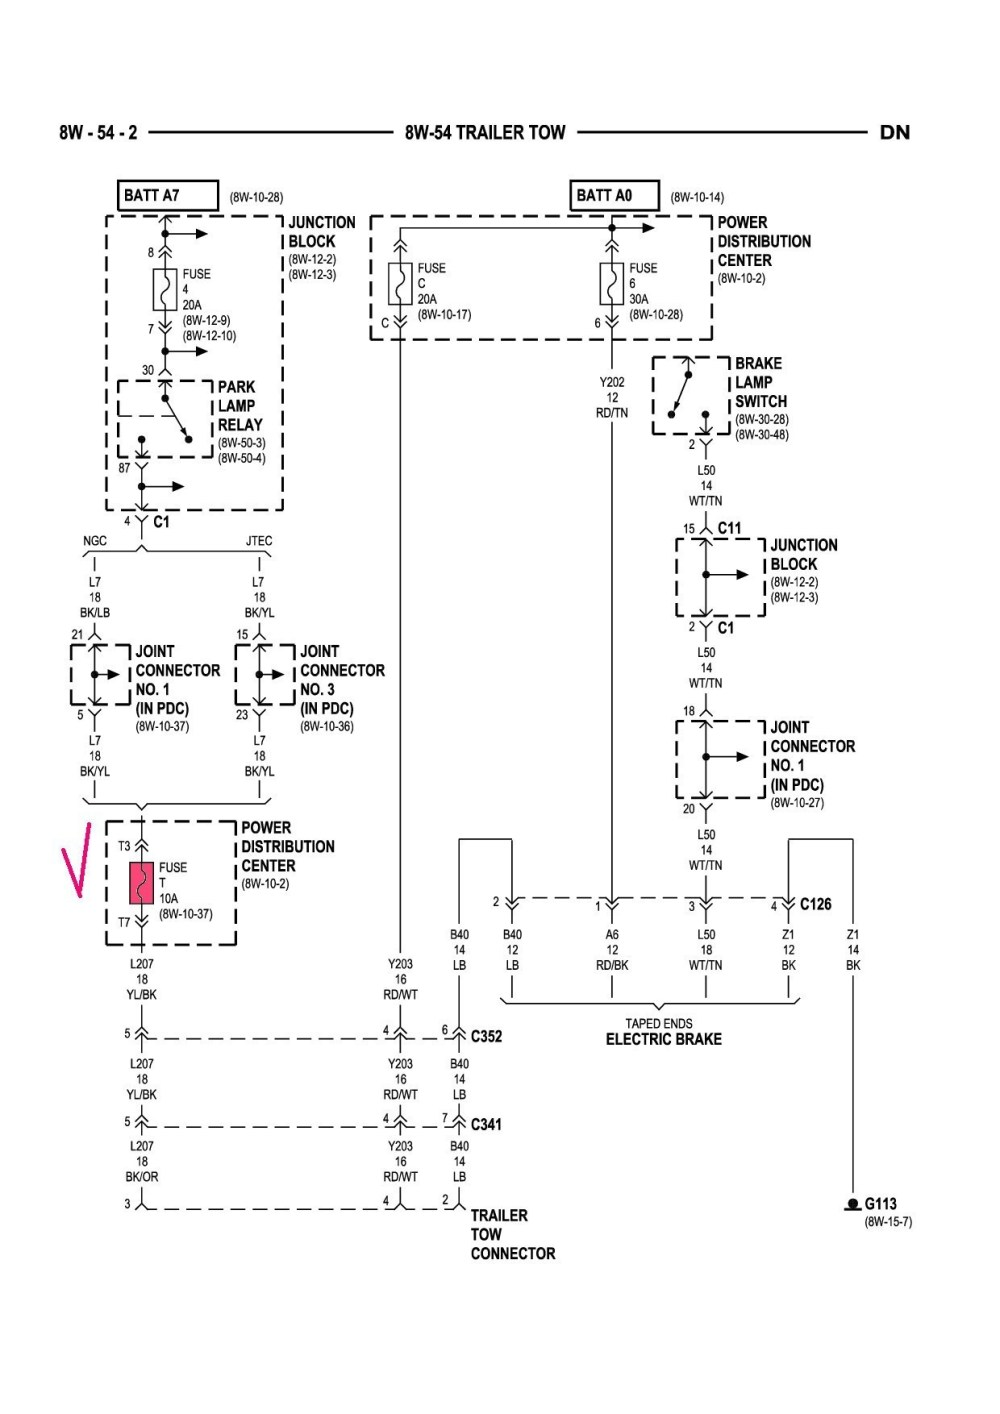 medium resolution of 2012 dodge ram trailer wiring diagram trailer wiring diagram for dodge durango valid trailer wiring